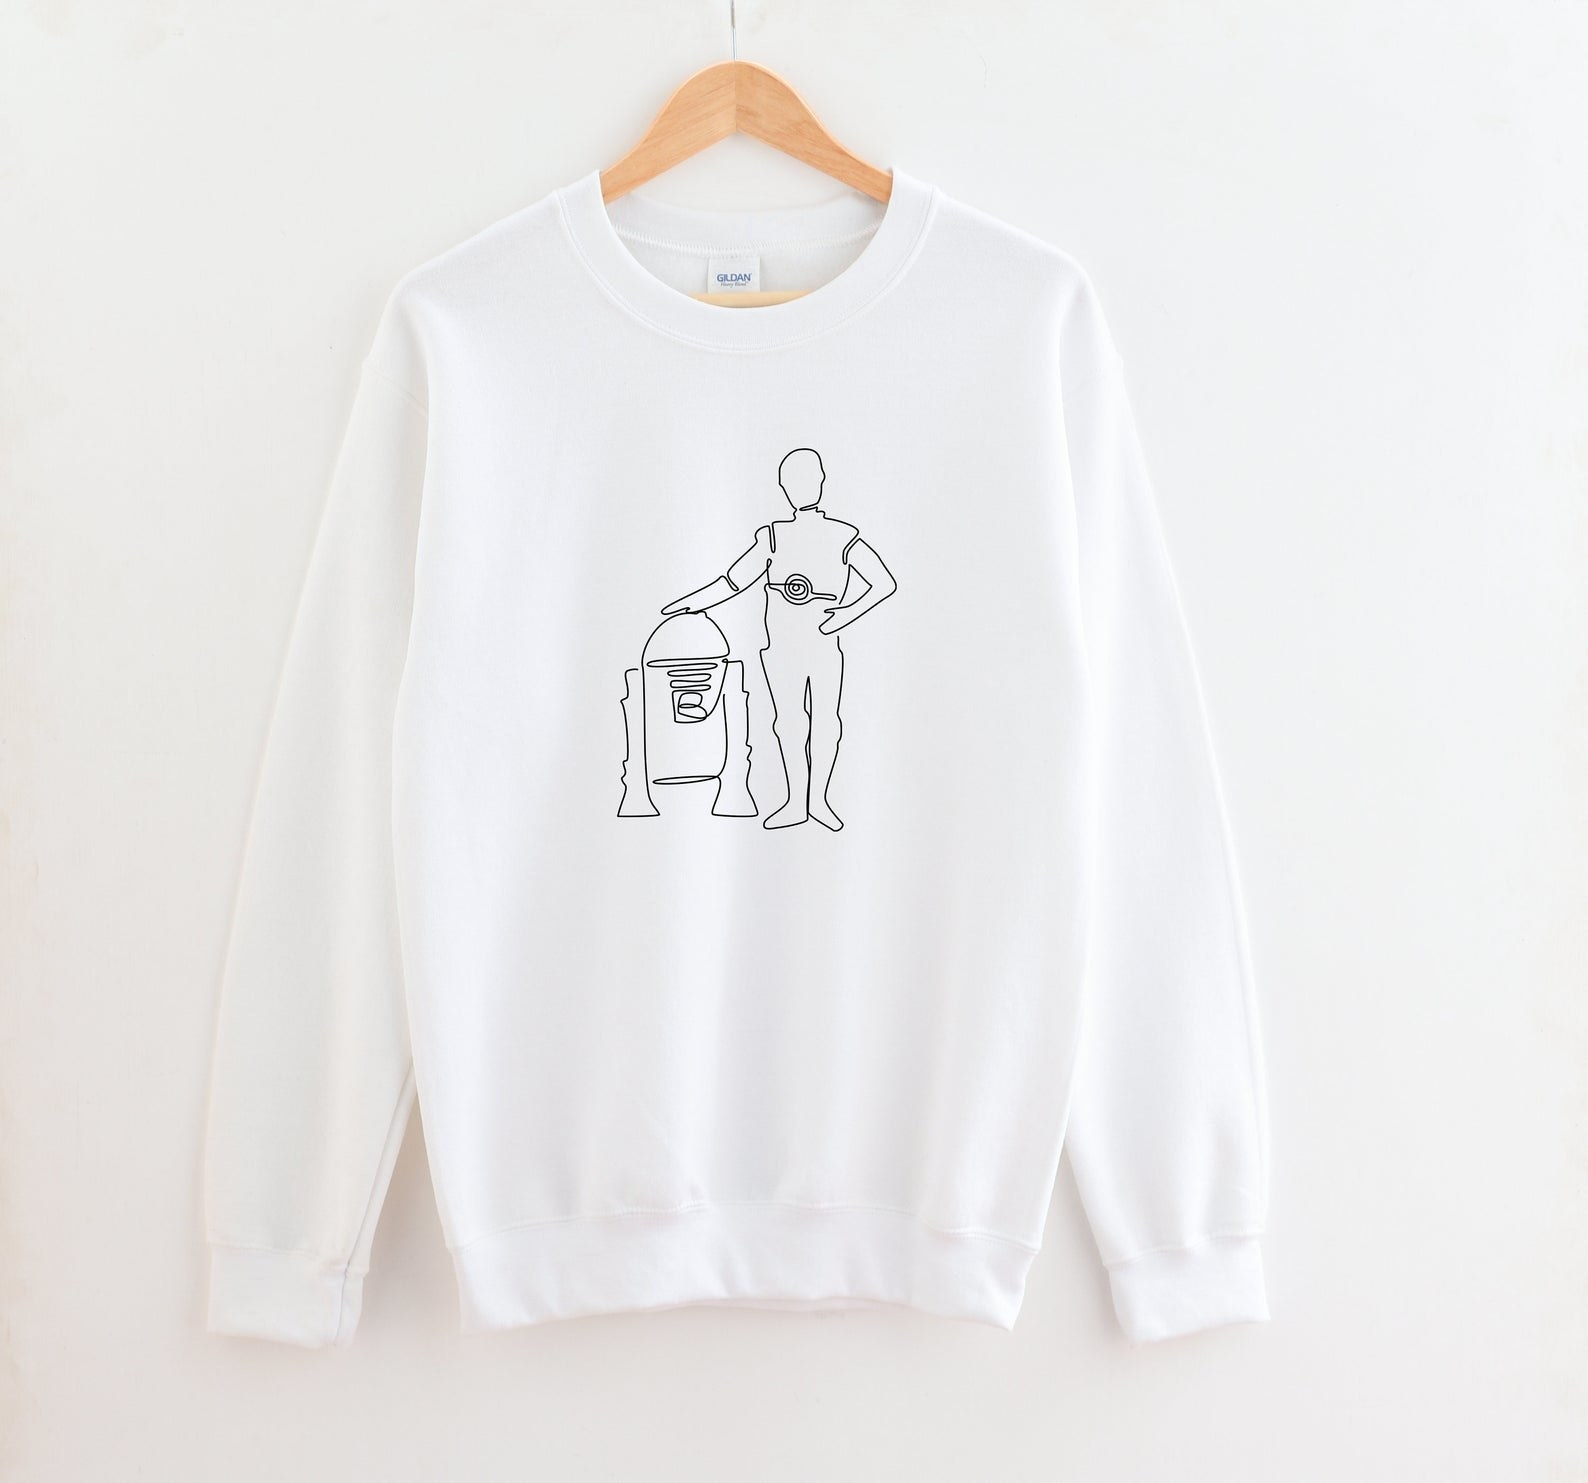 a white sweatshirt with outlined drawings of the two droids on it